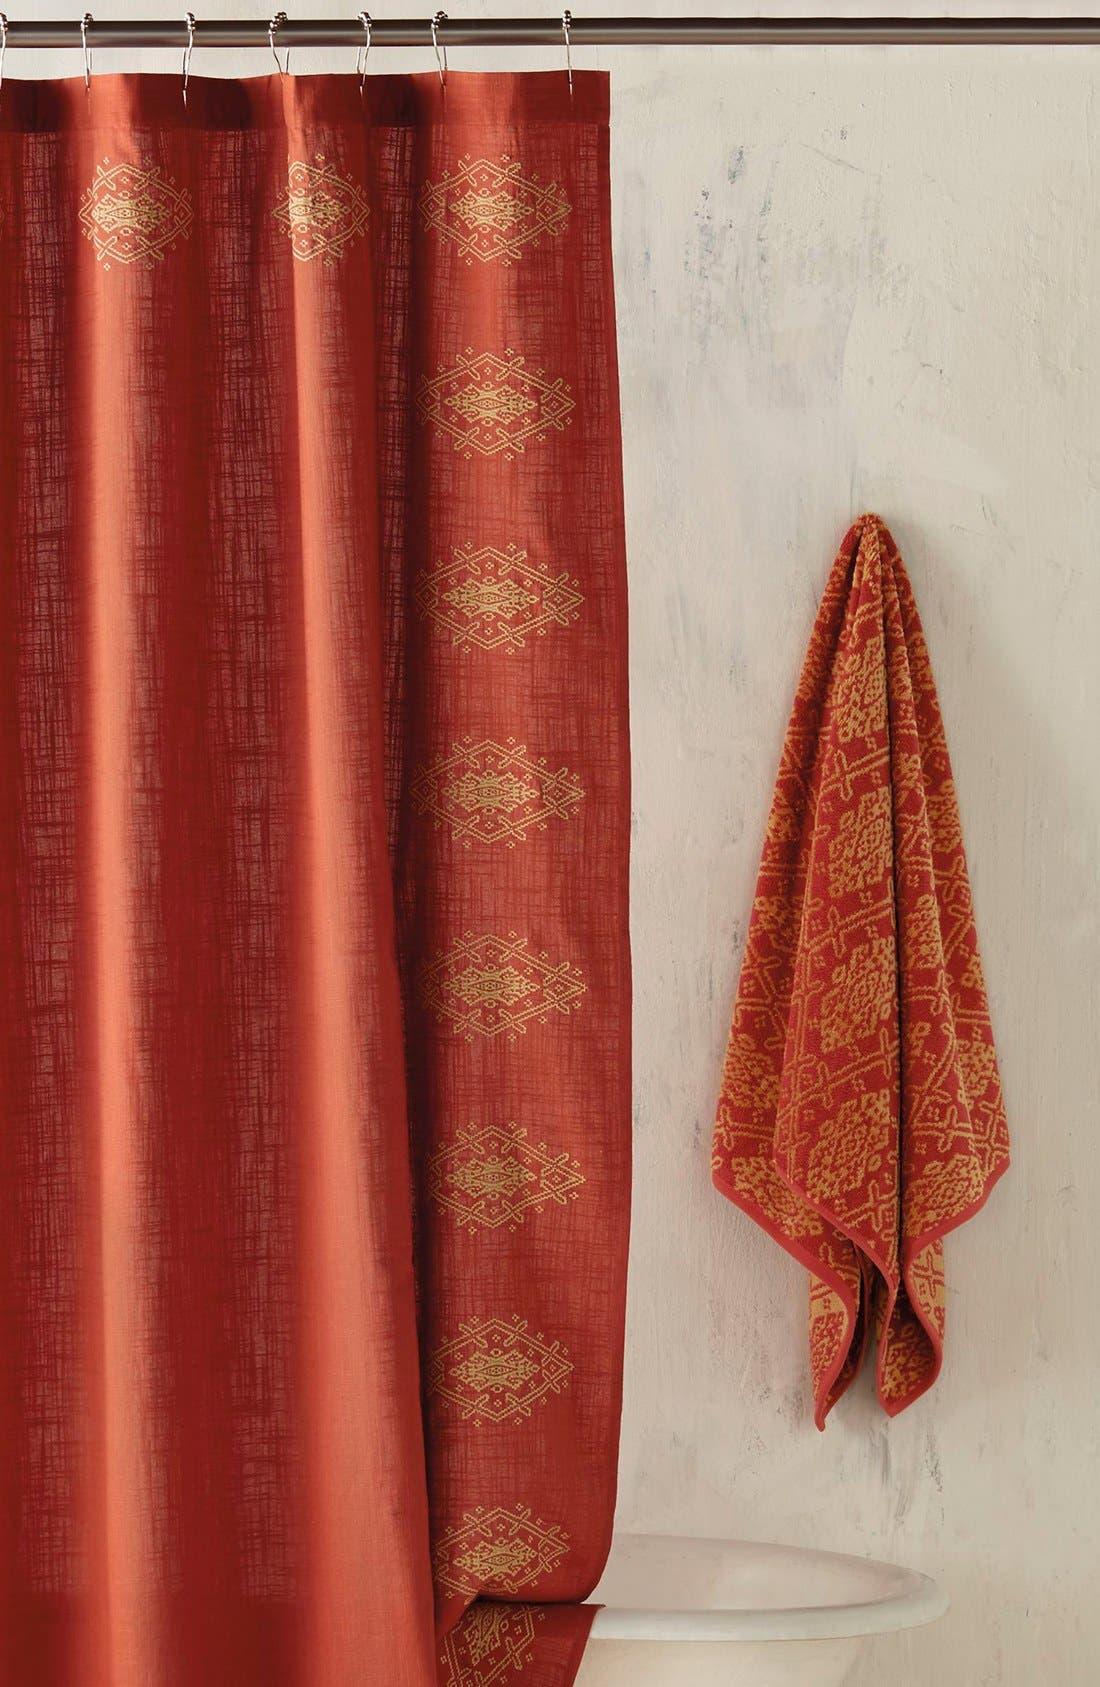 Red Shower CurtainRed Shower Curtain Liner Fresh Extra